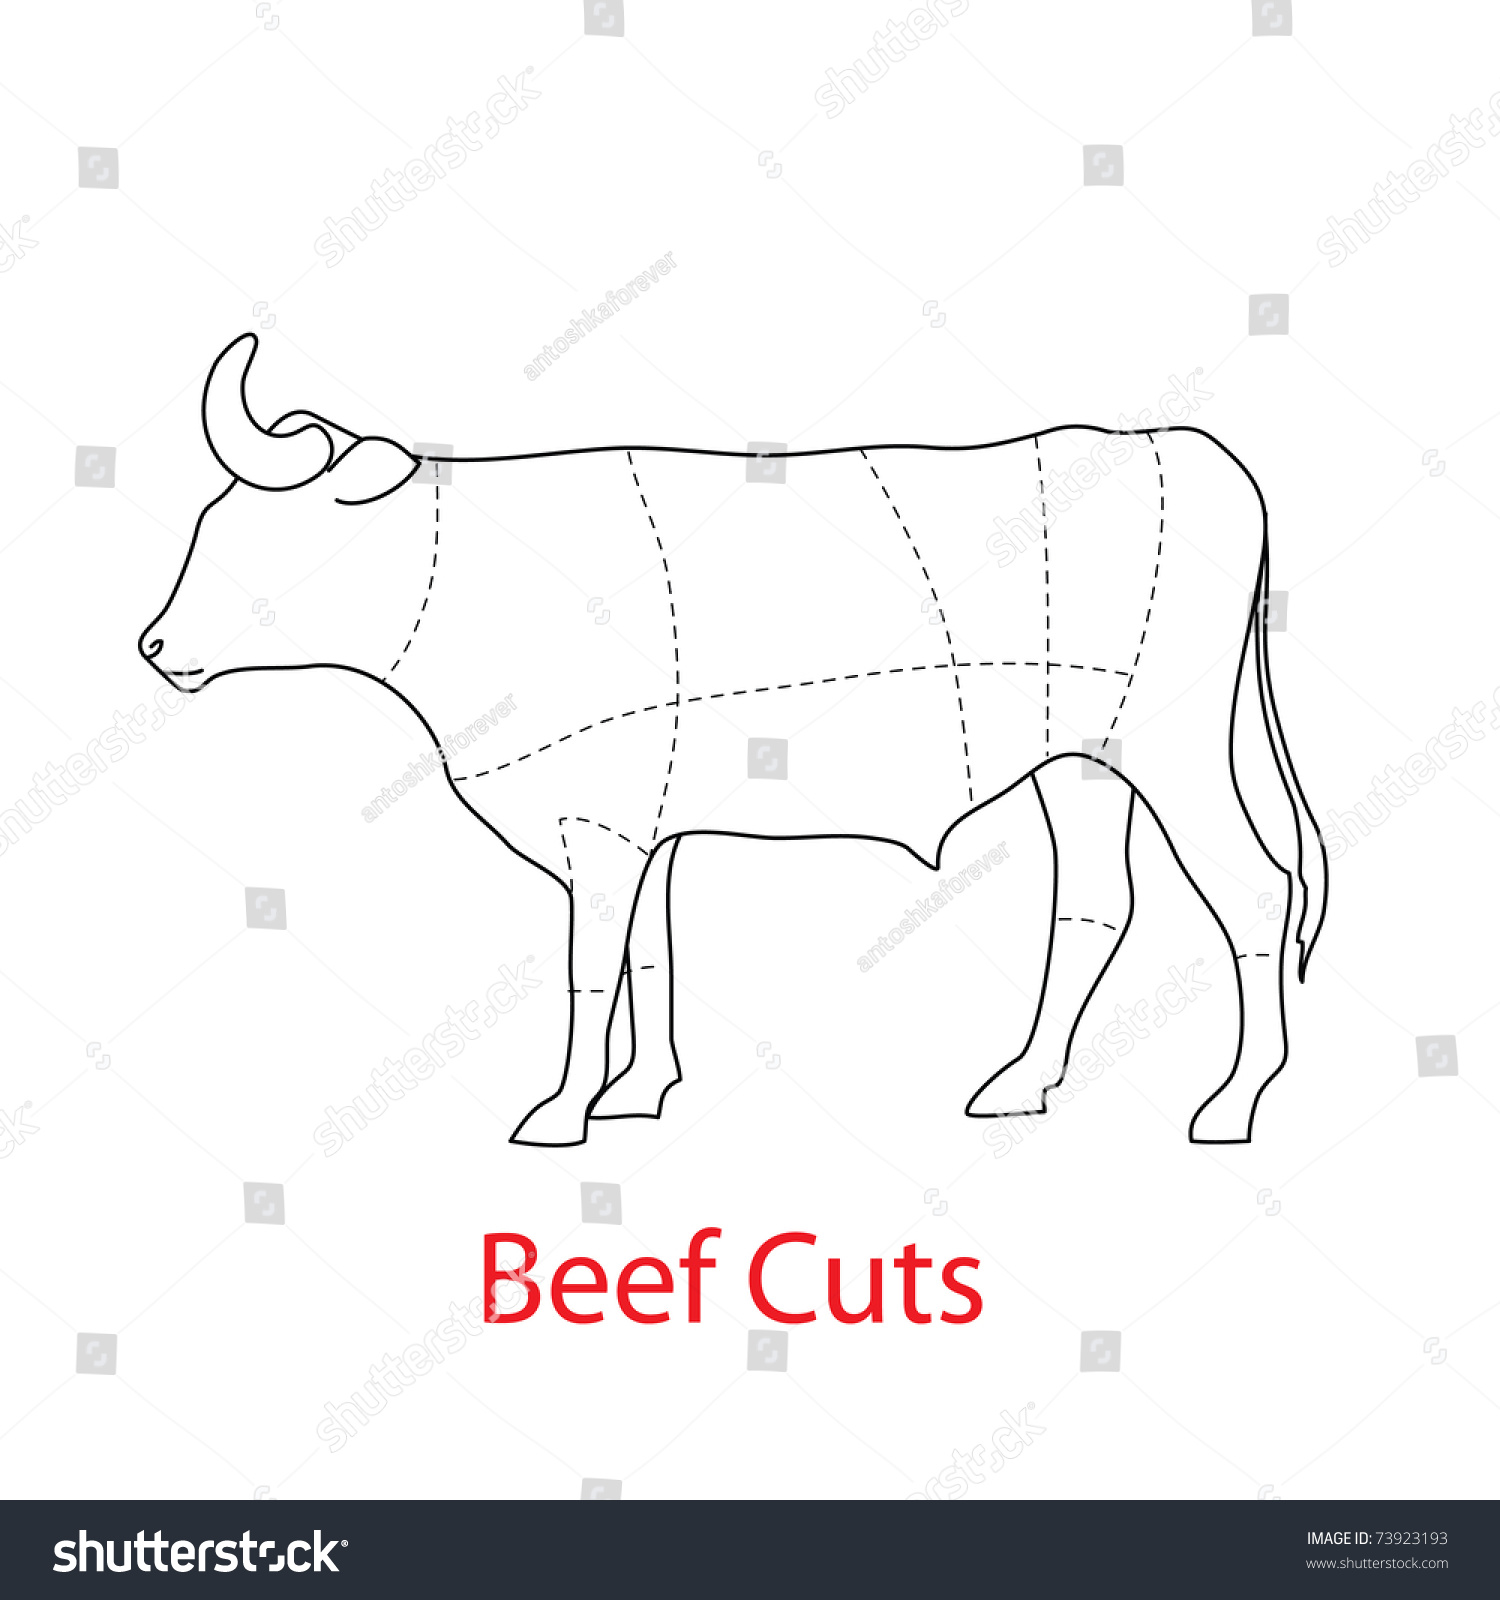 scheme template beef cuts stock vector royalty free 73923193